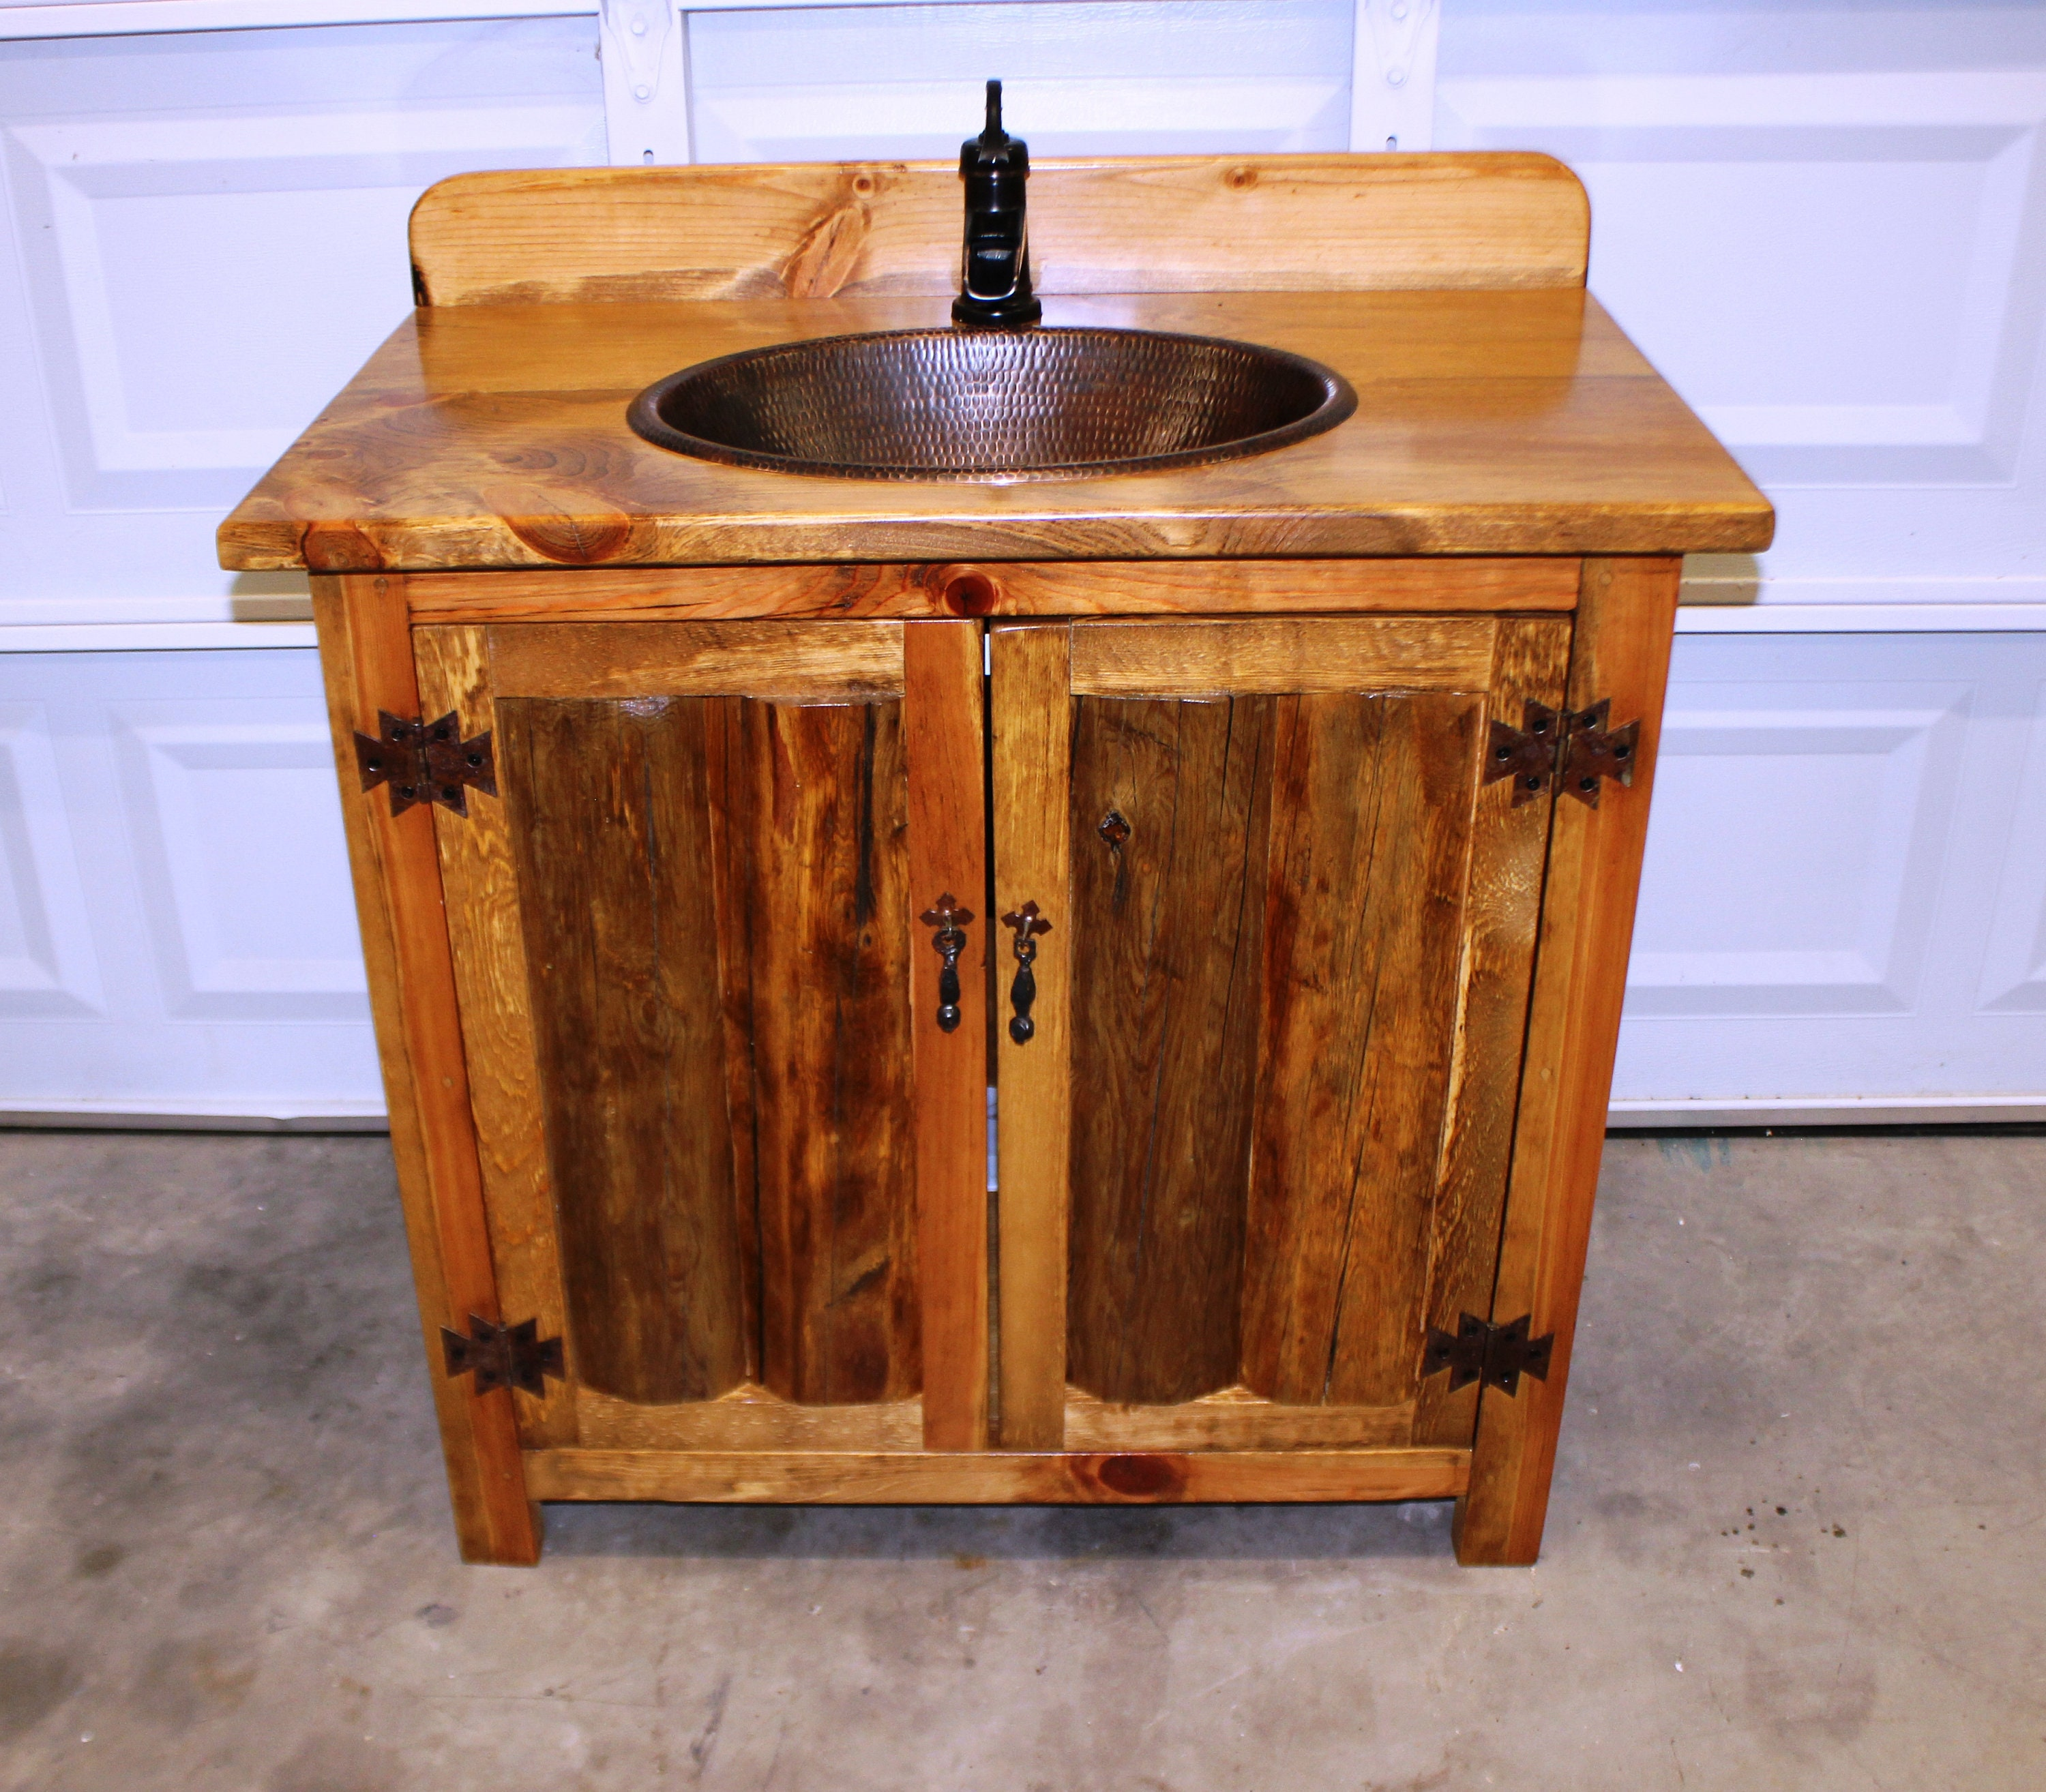 Rustic Log Bathroom Vanity 36 Bathroom Vanity With